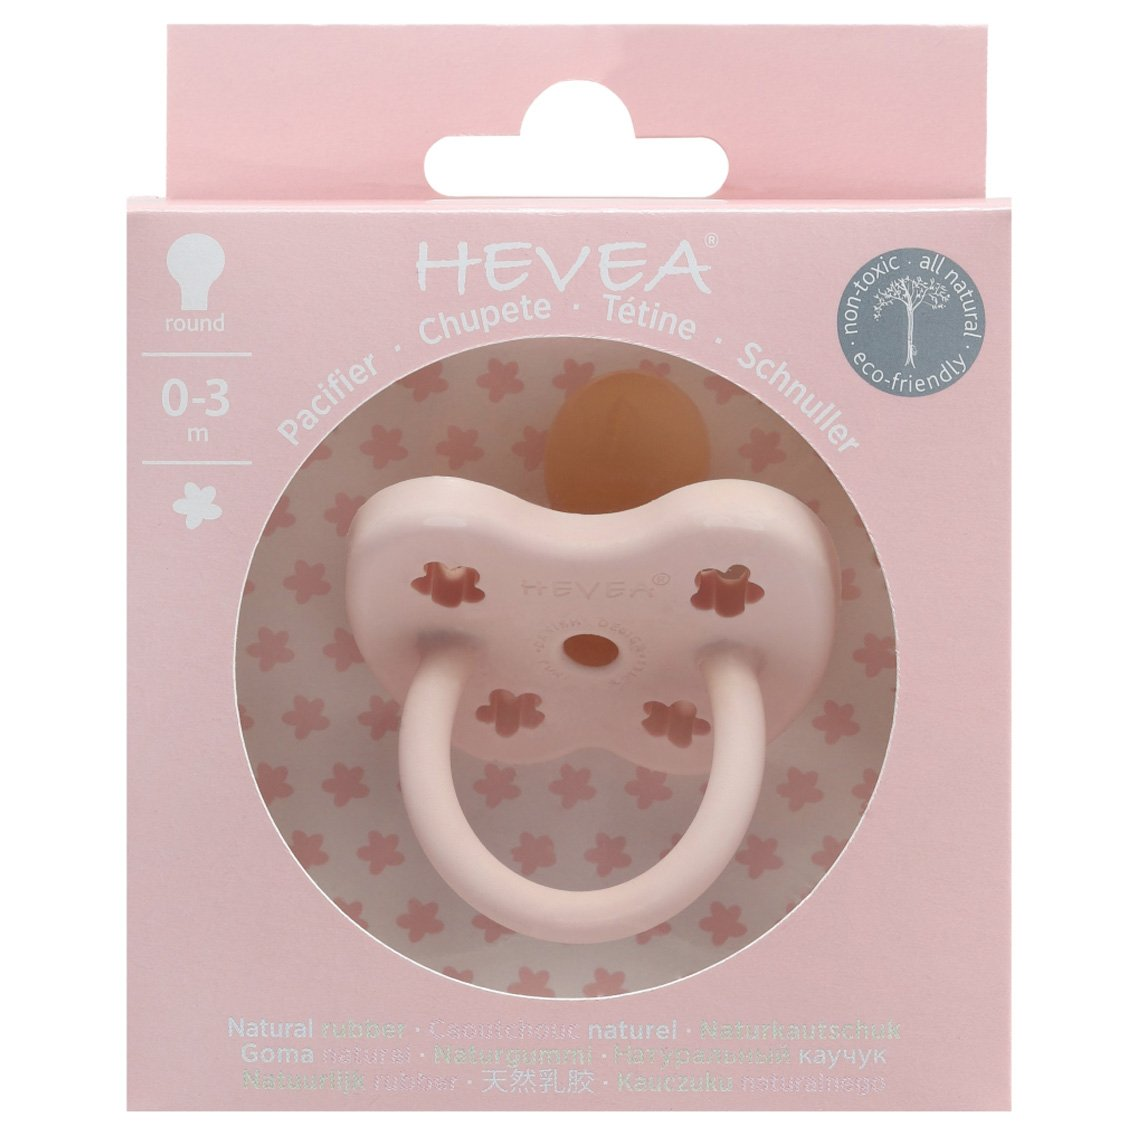 Hevea Pacifier - Powder Pink - Orthodontic (4603552497751)